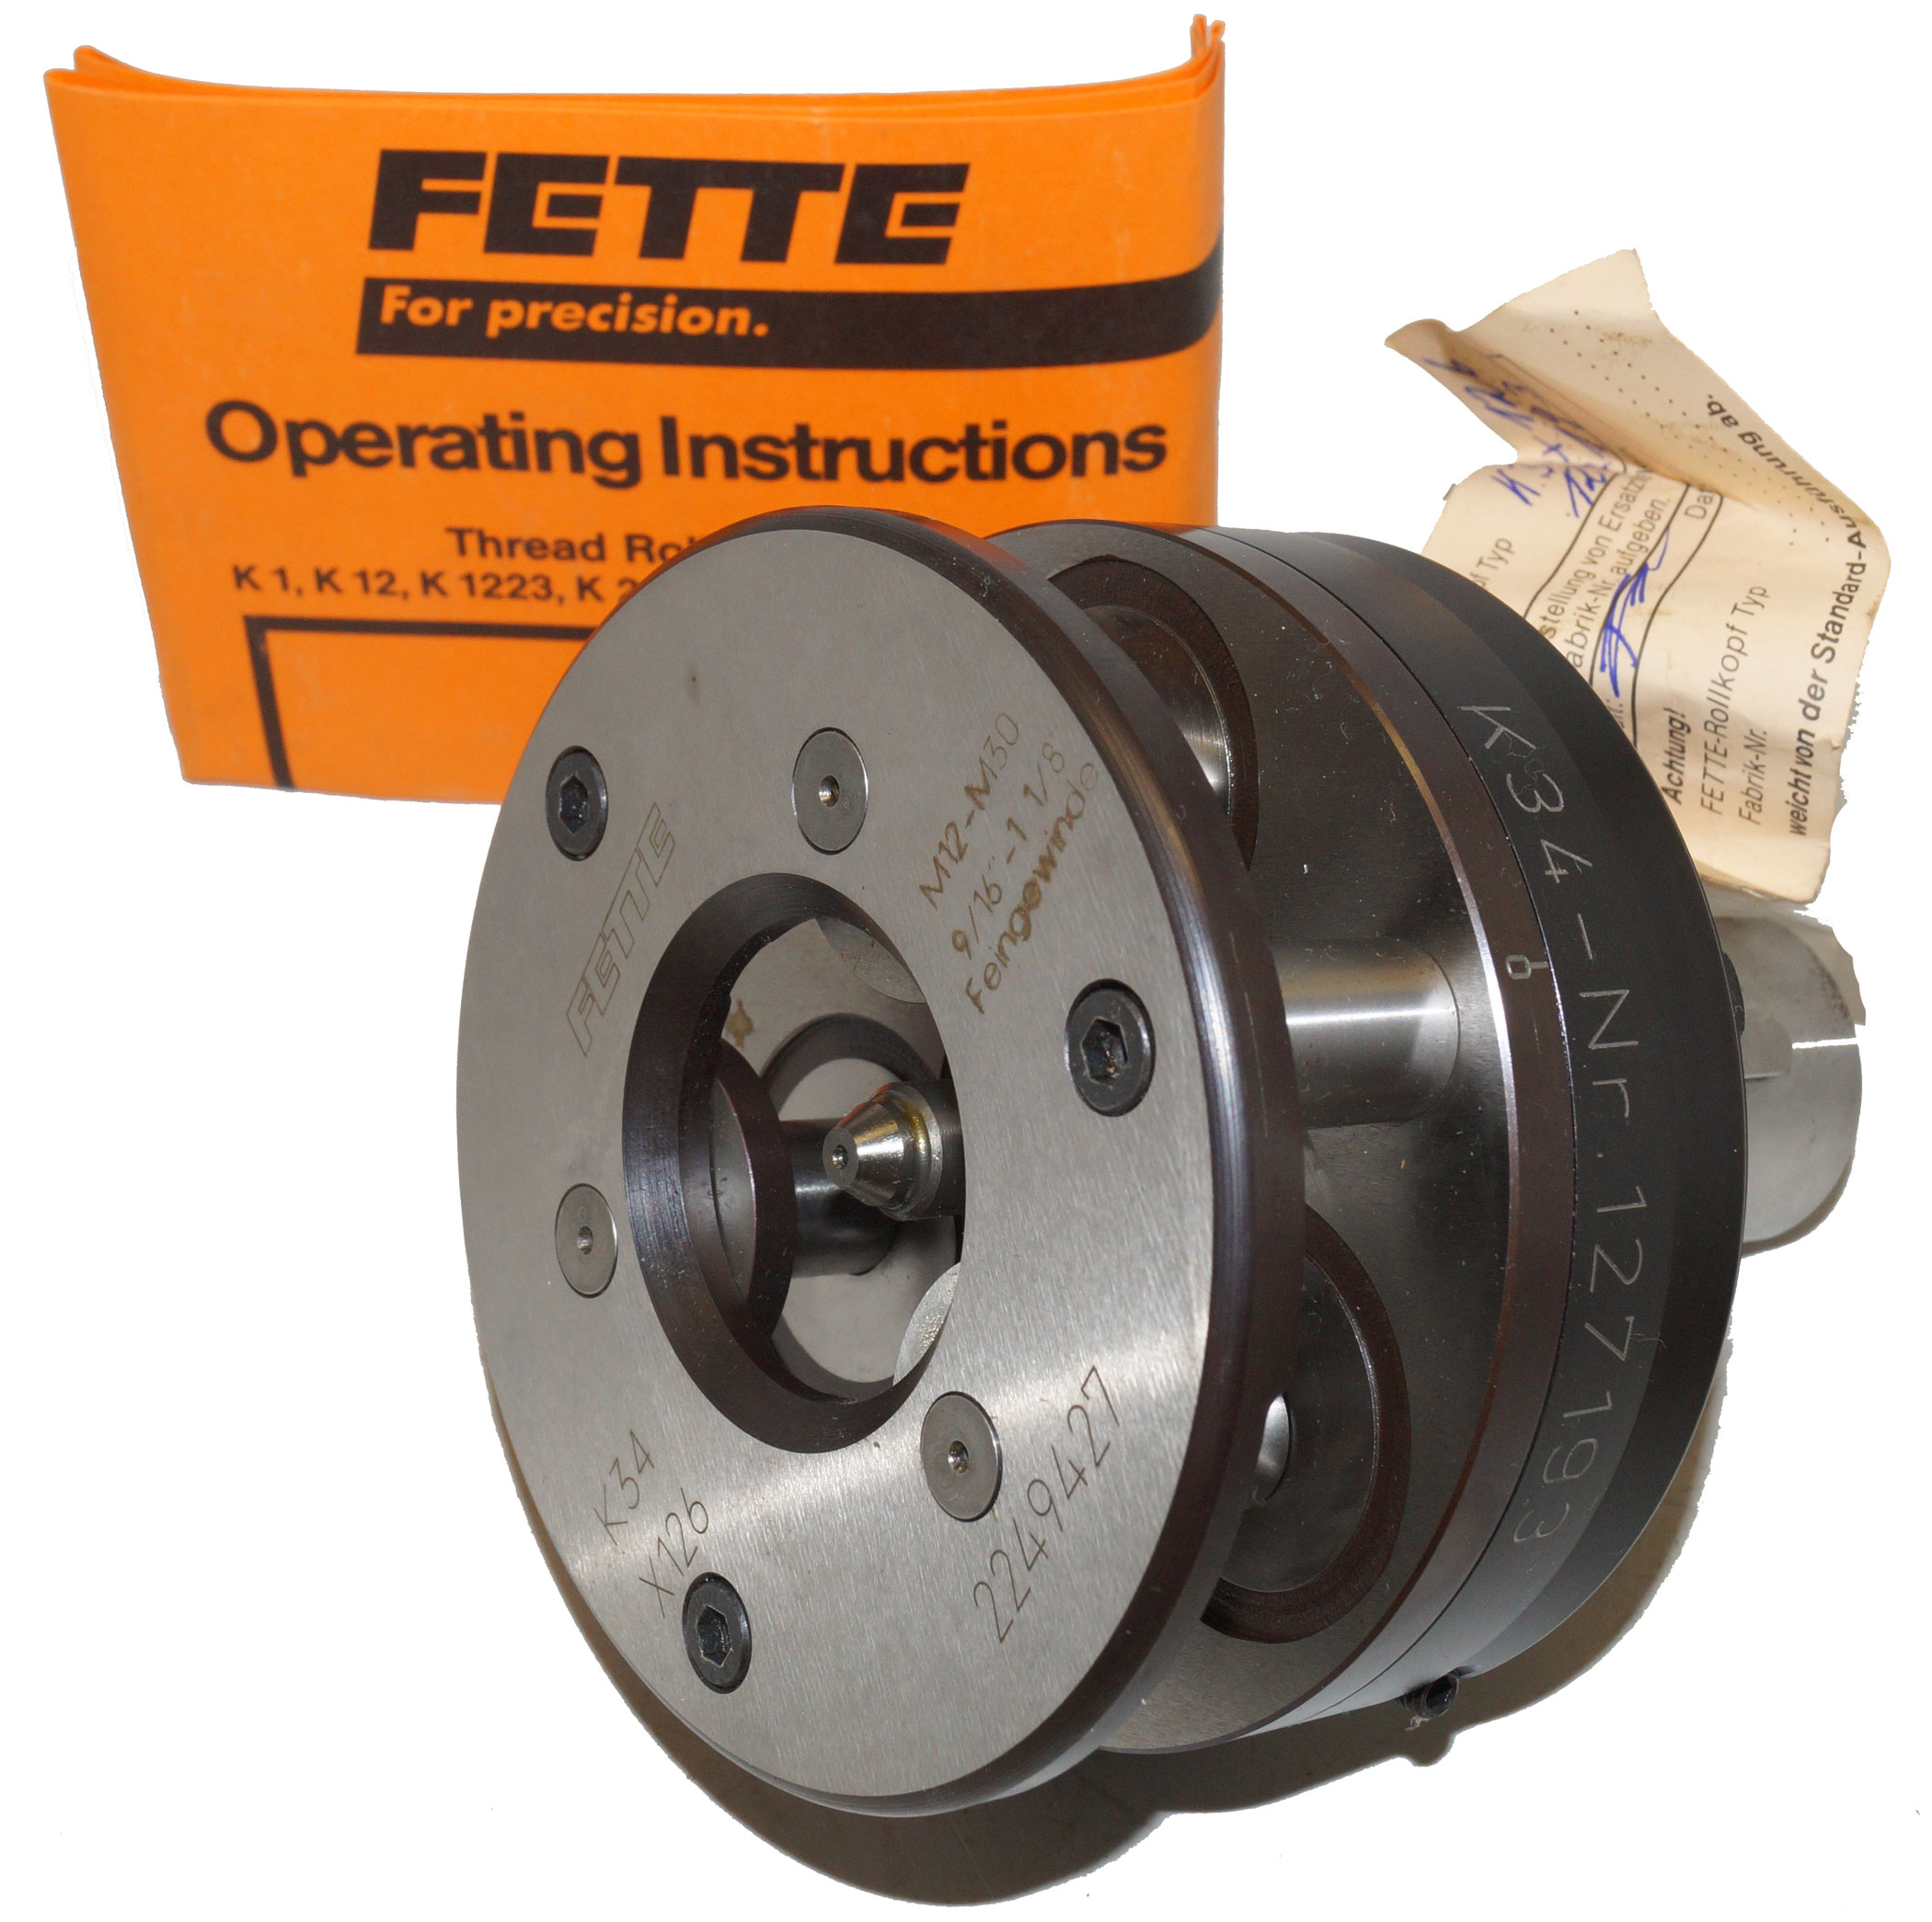 "LMT Fette K34 Axial Thread Rolling Head 9/16"" to 1-1/8"" (M12-M30)"